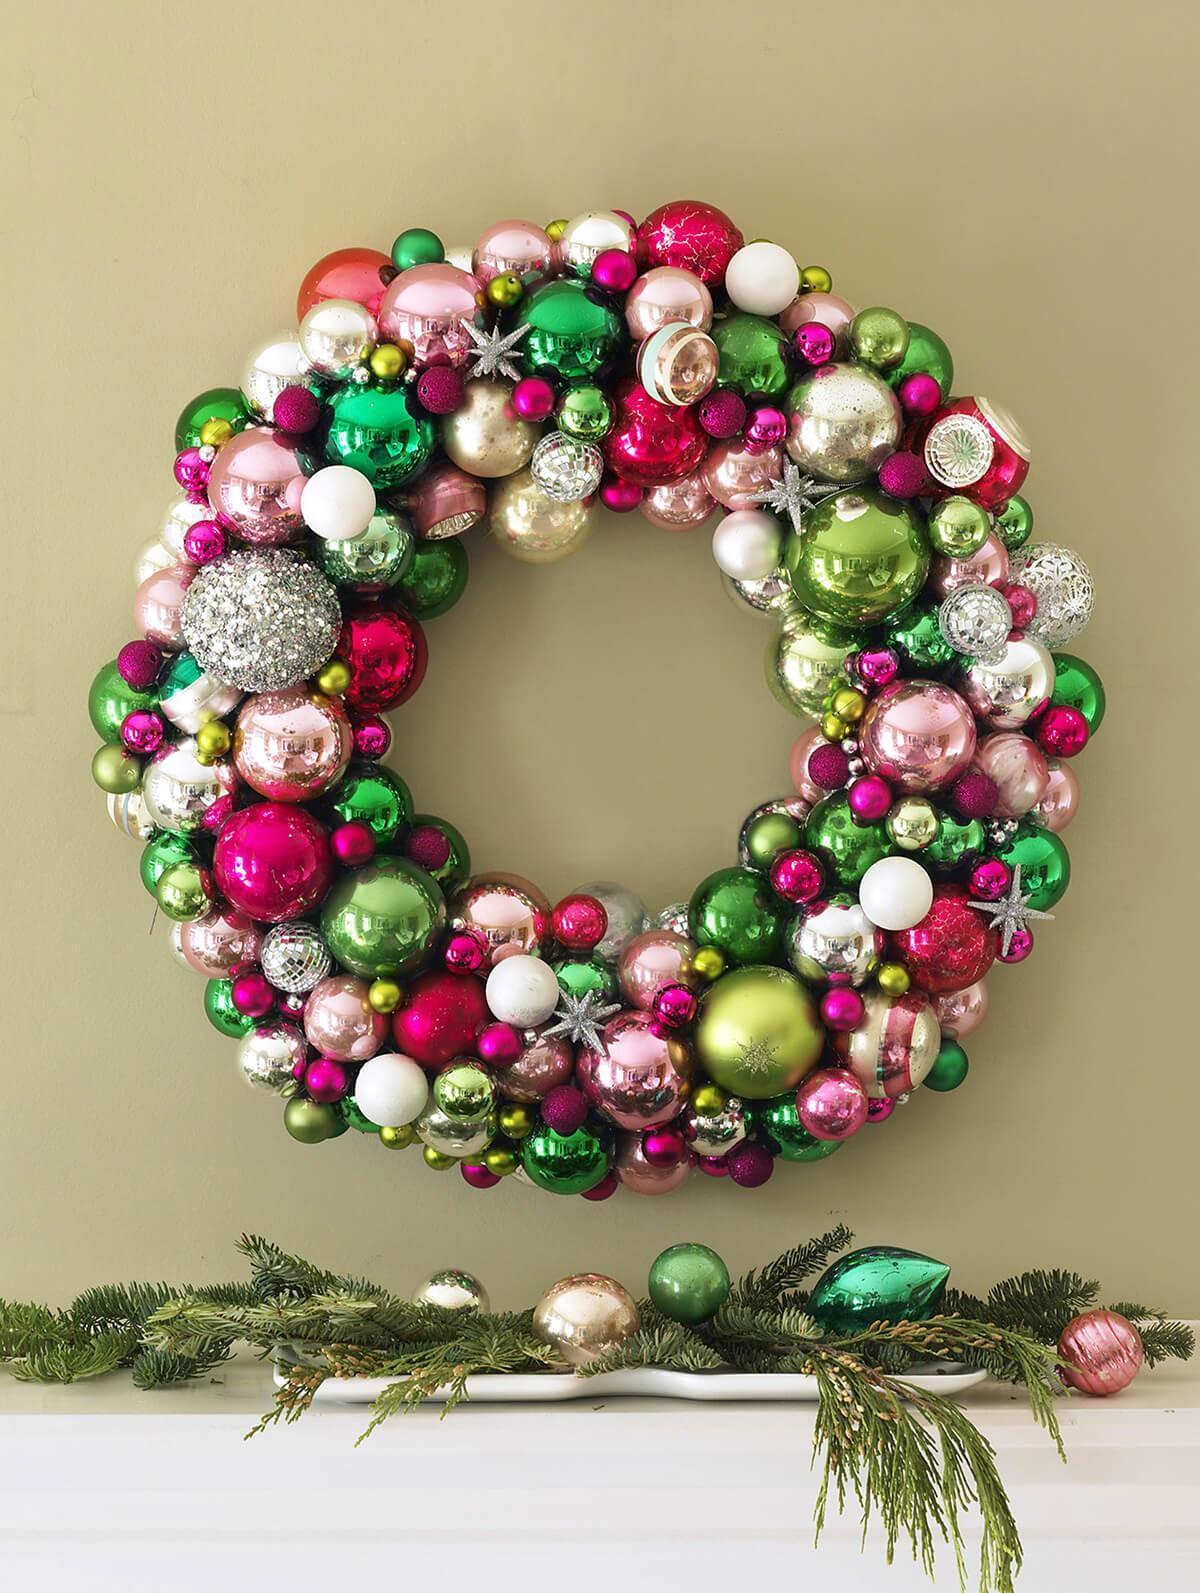 Best Christmas Wreath Ideas Designs 2018